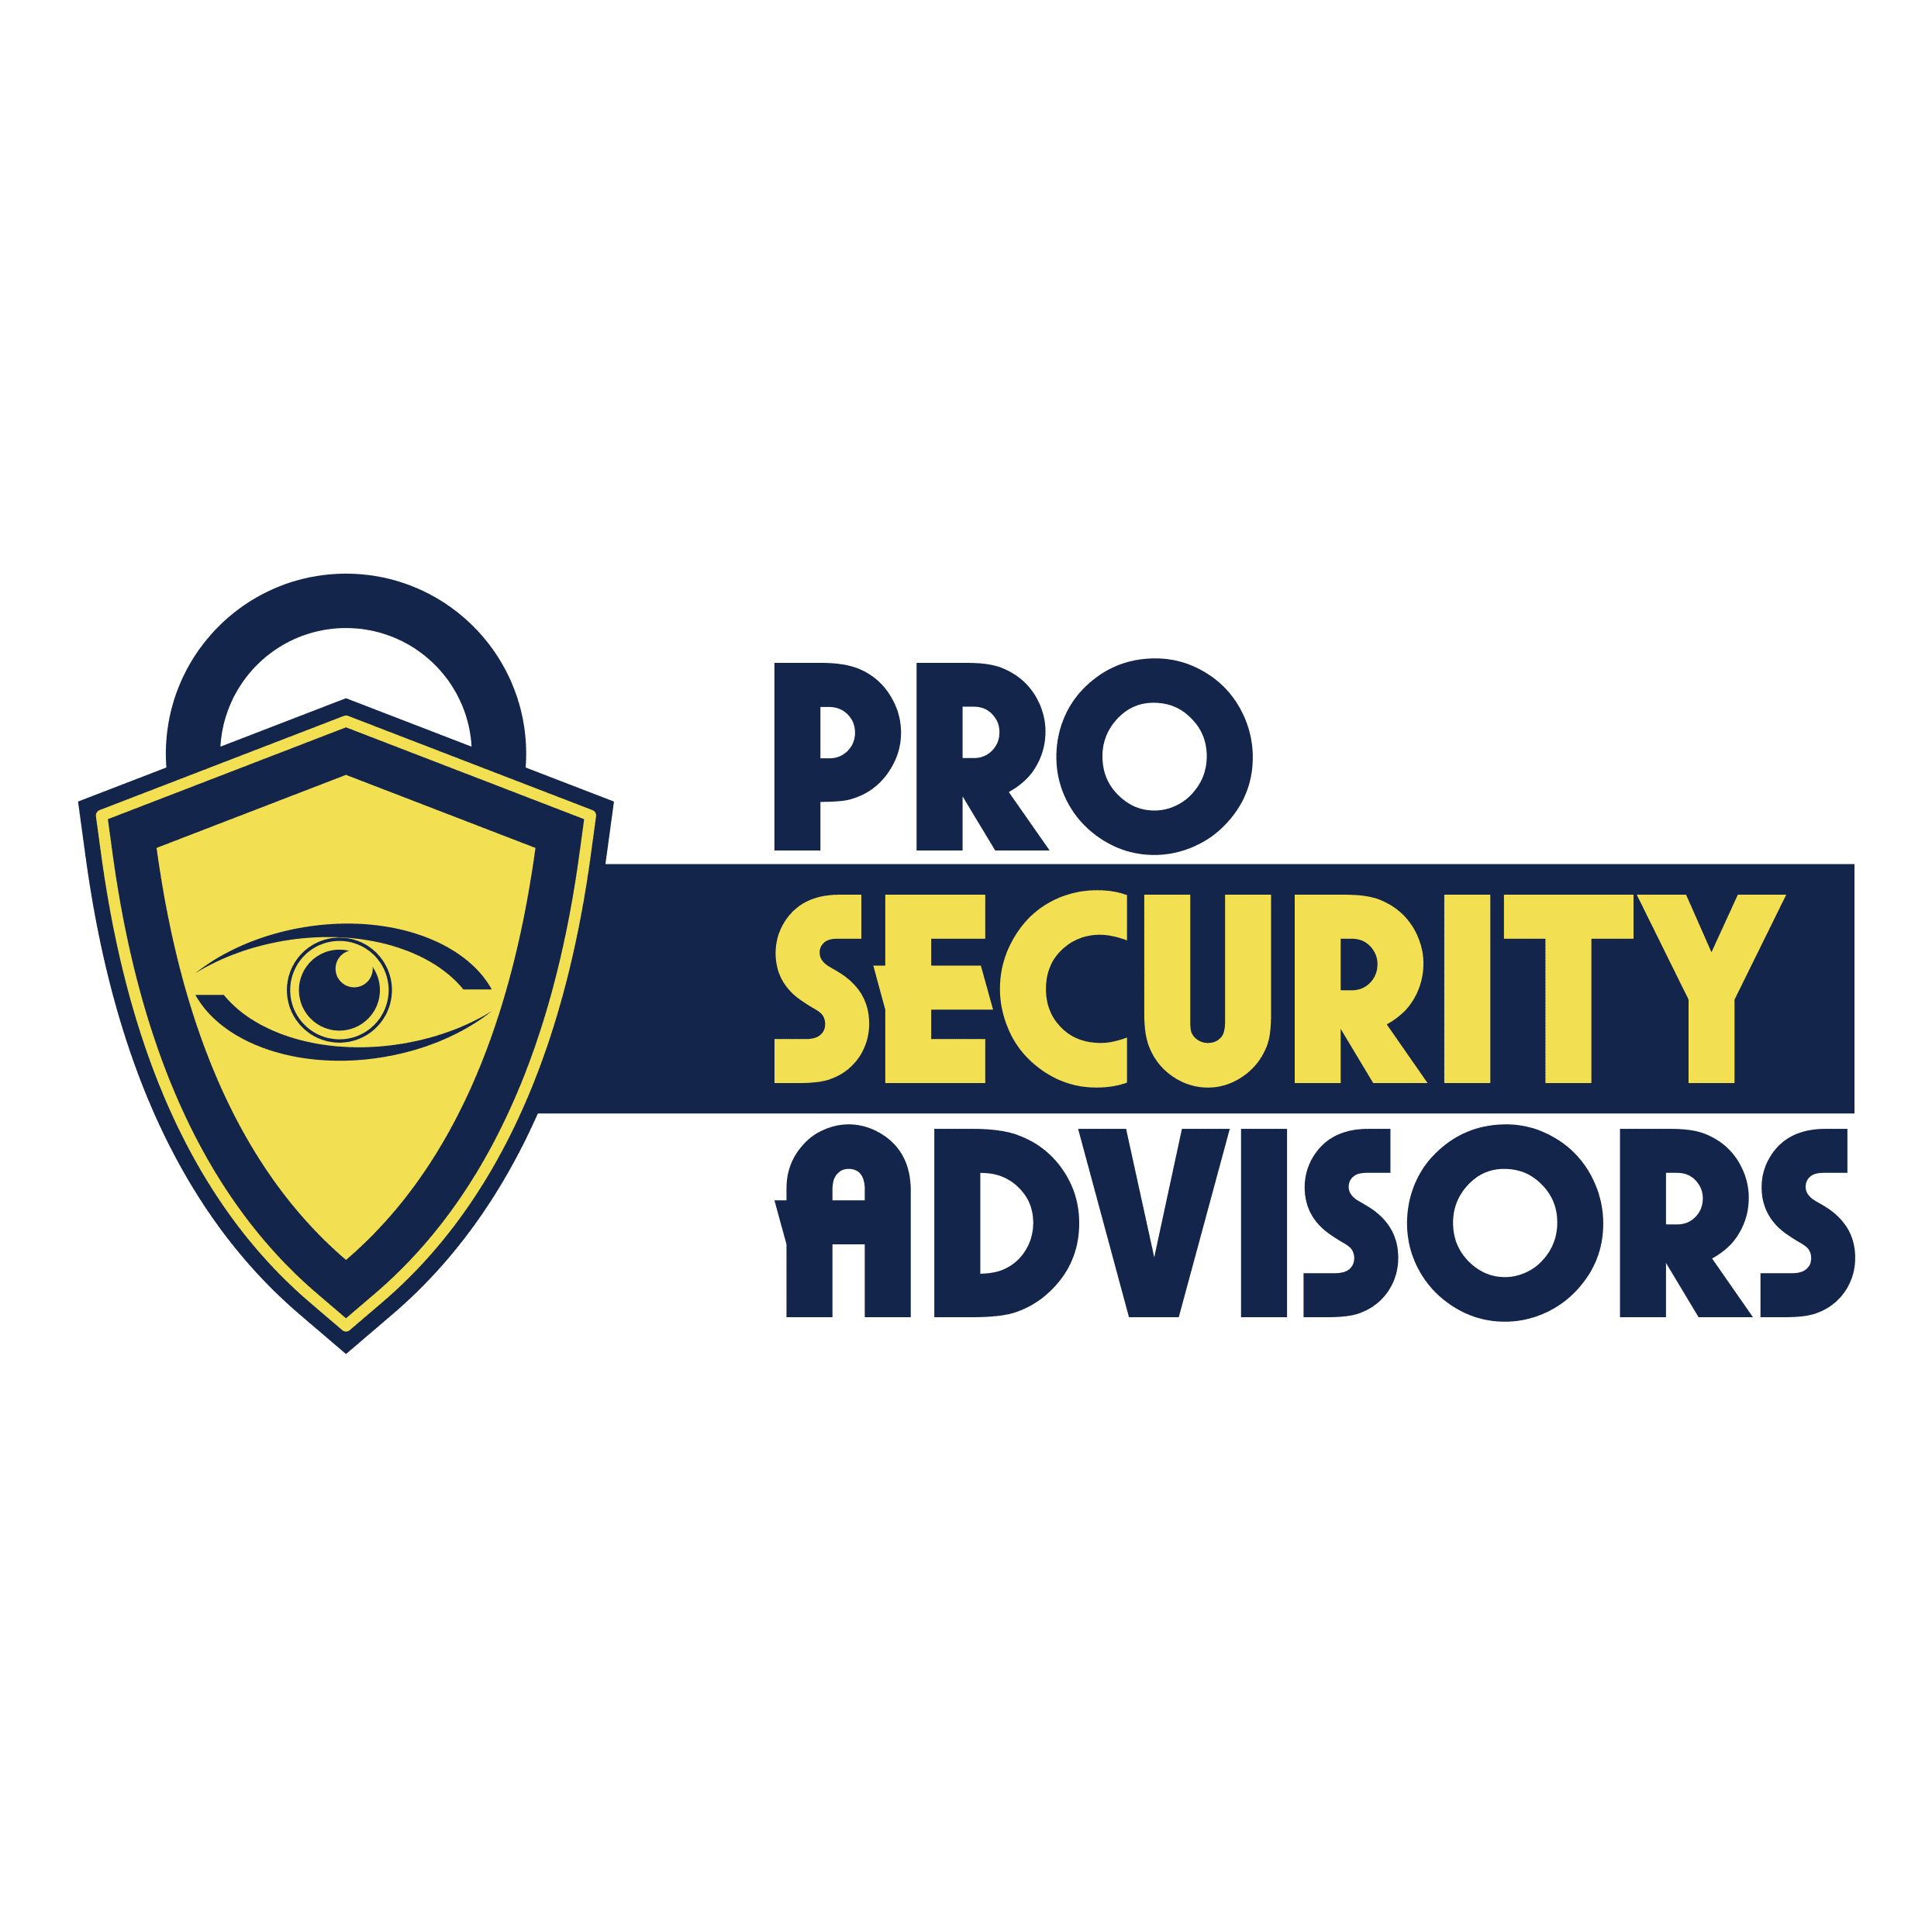 Pro Security Advisors - Pompano Beach, FL - Home Security Services